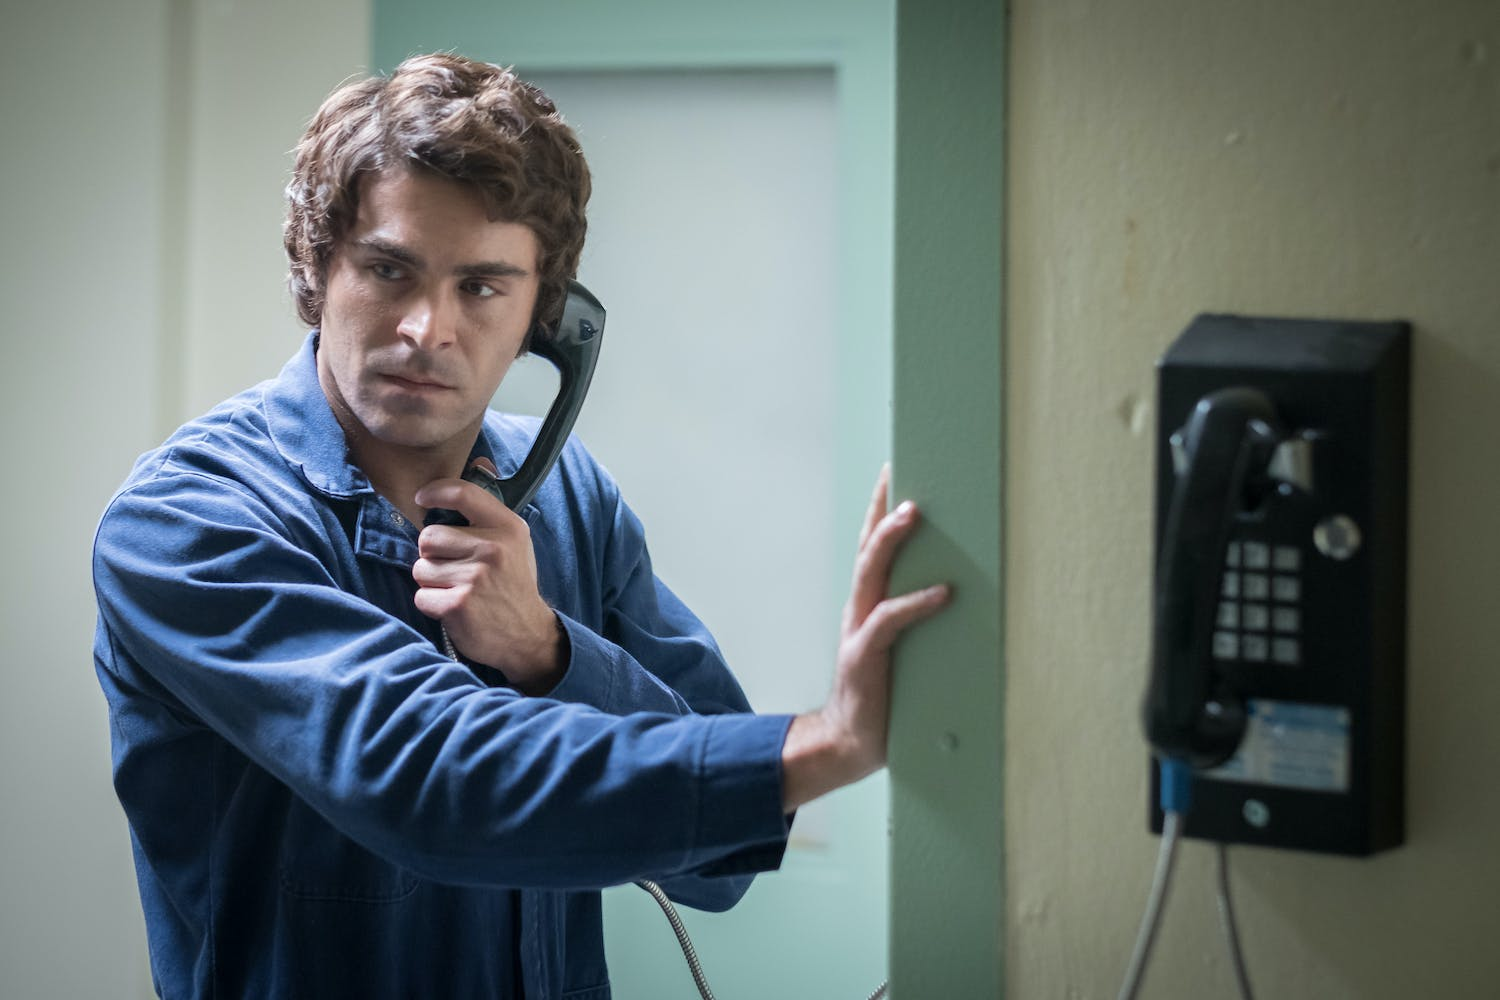 Netflix - Extremely Wicked, Shockingly Evil and Vile review